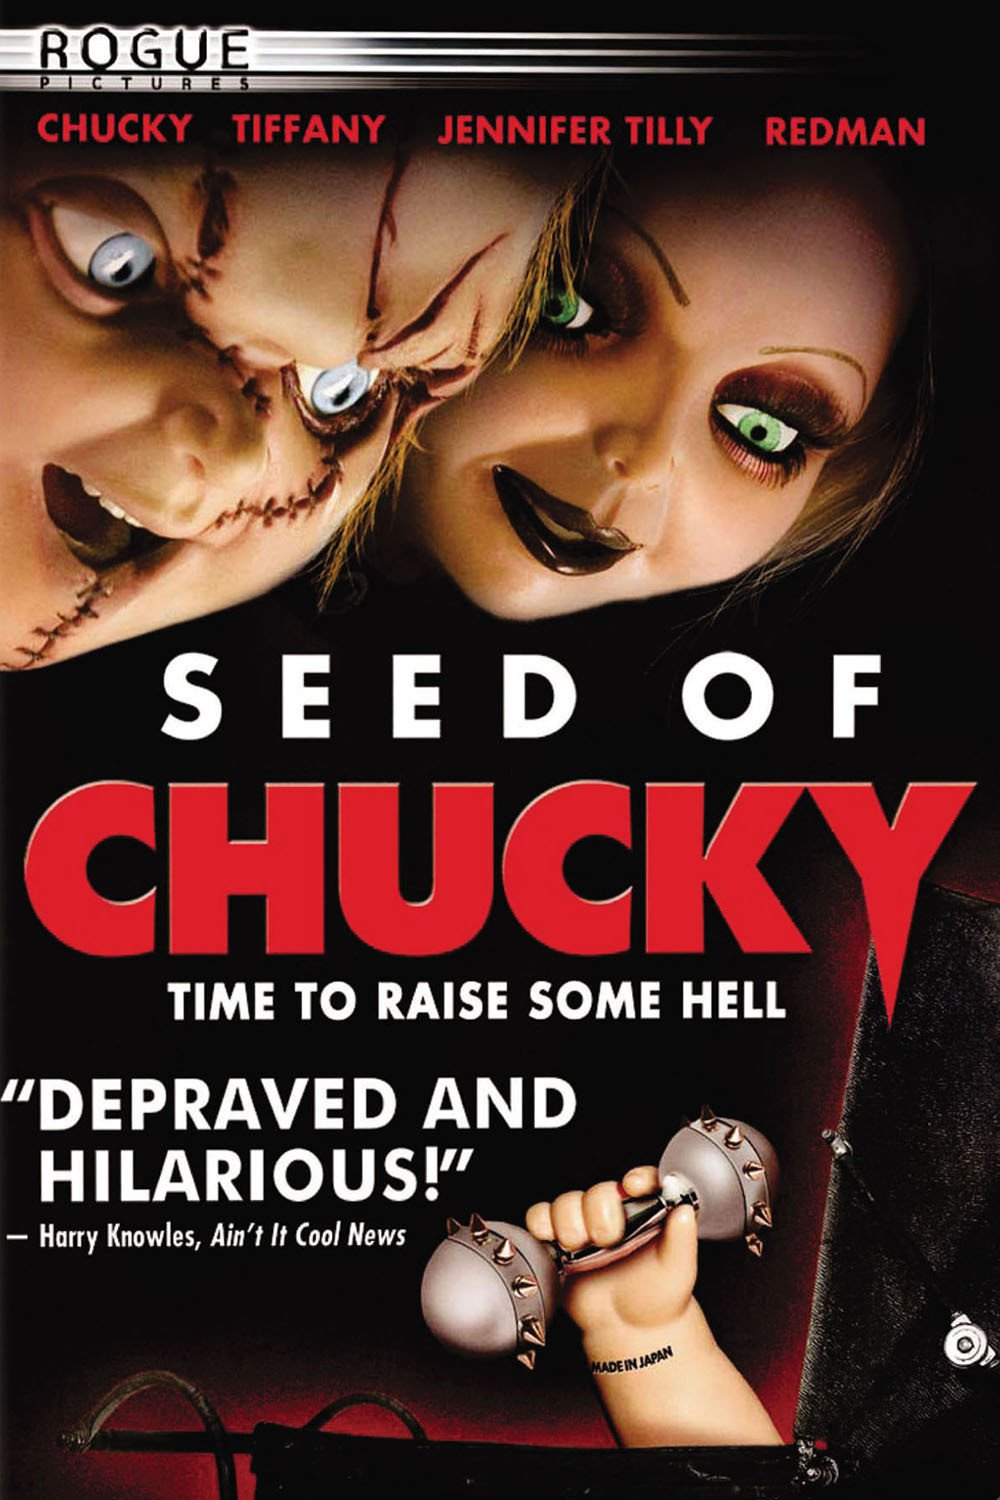 Seed-Of-Chucky-Bad-Movie-wallpaper-wpc9009064